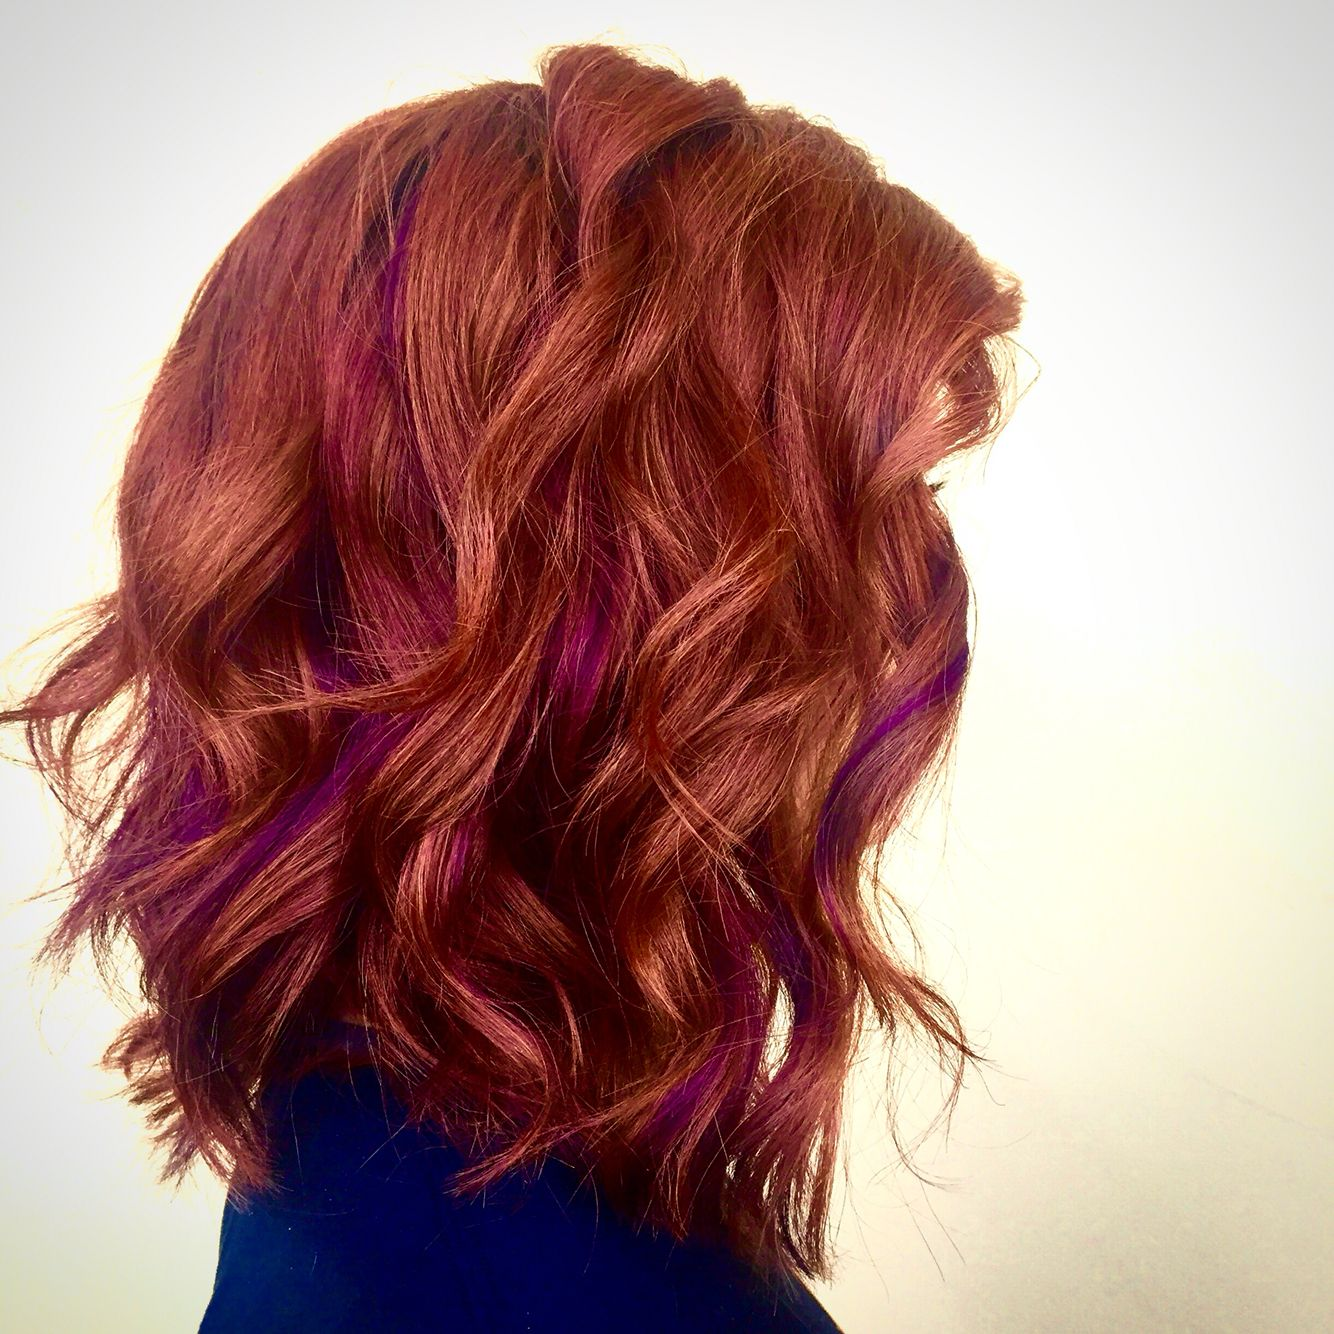 Red And Purple Hair Redhair Naturalred Purplehair